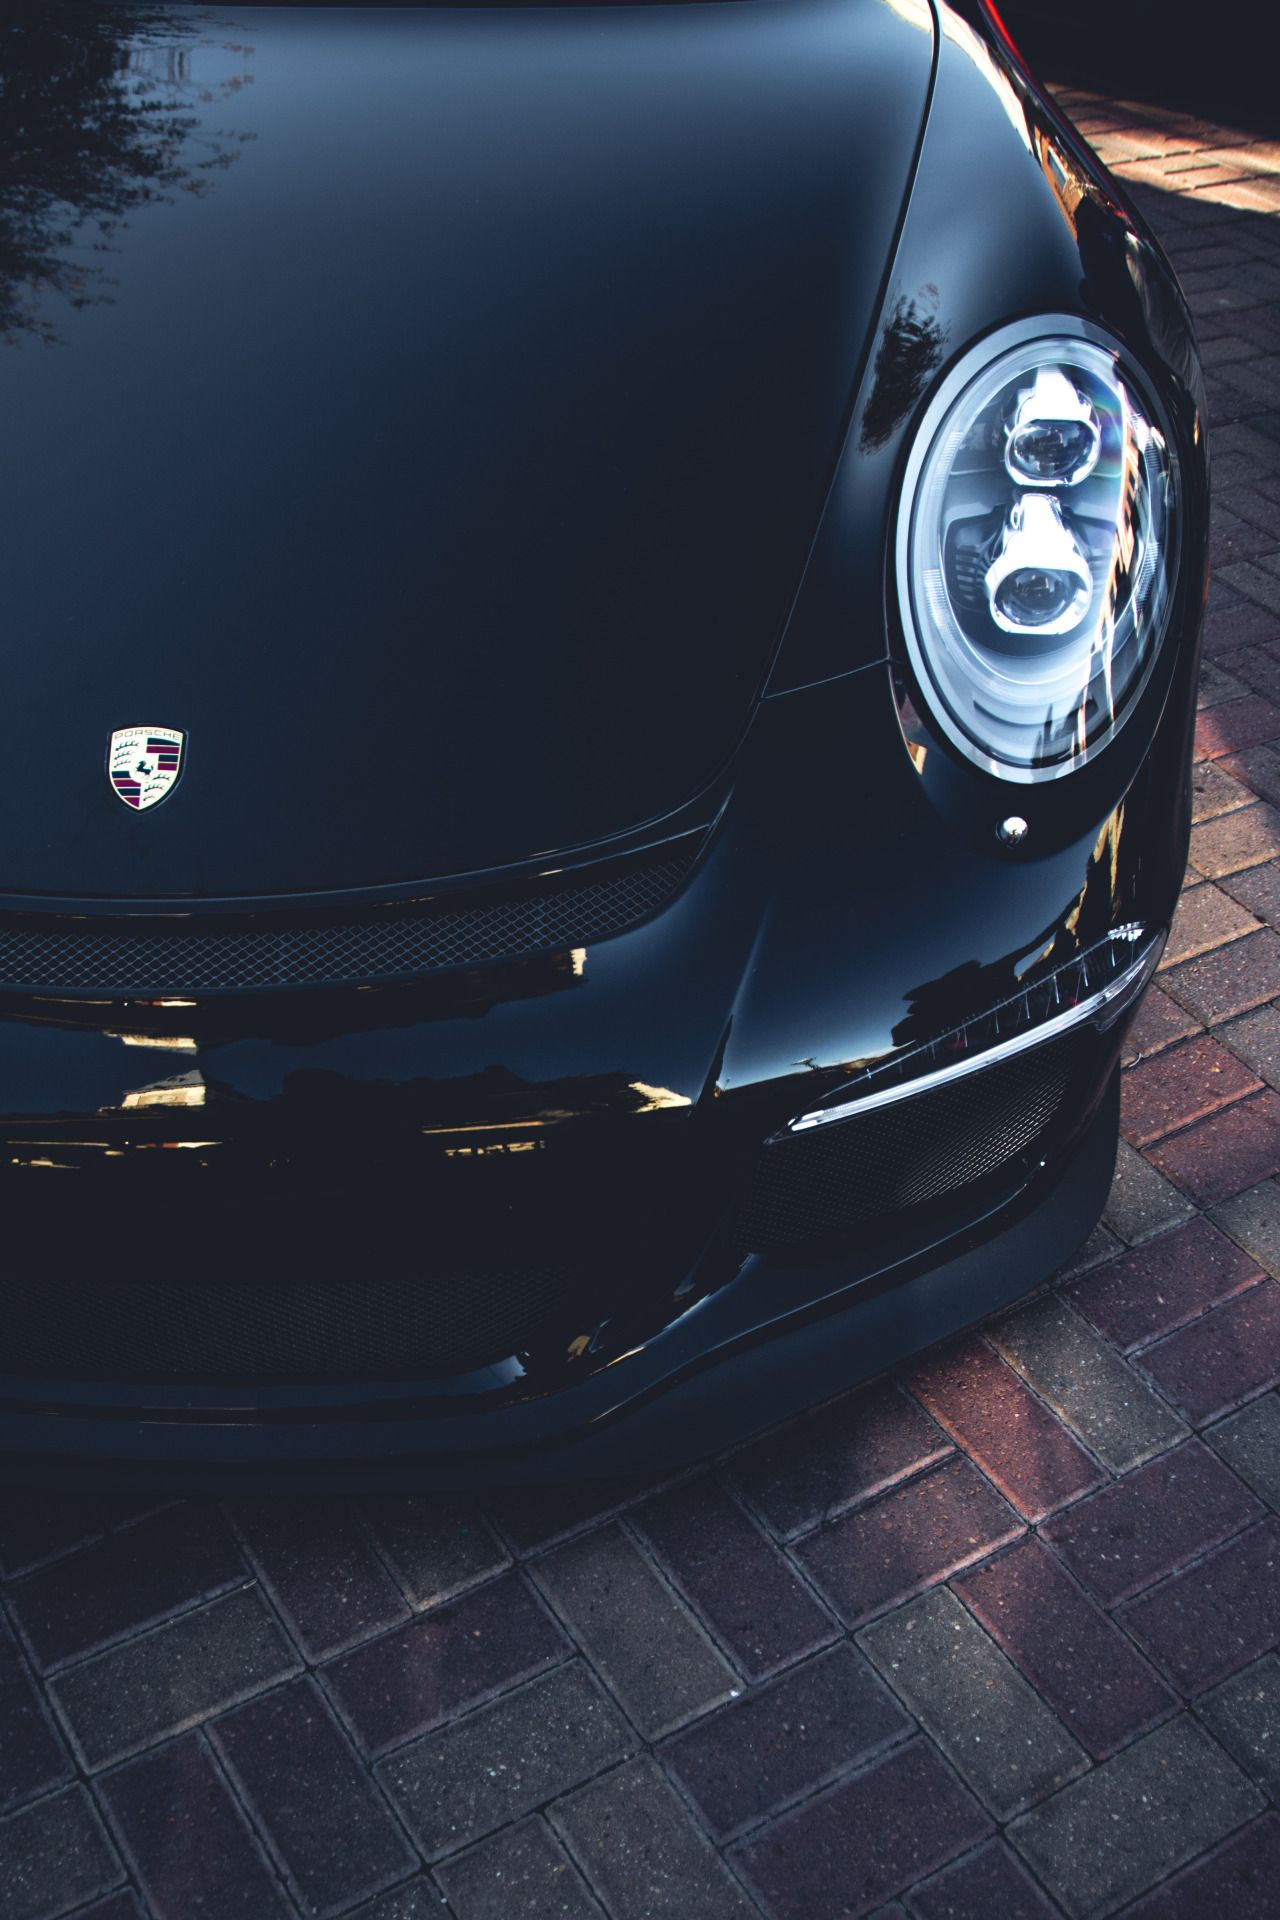 Expensive Lifestyle Expensive Cars Luxury Cars Porshe Car Black